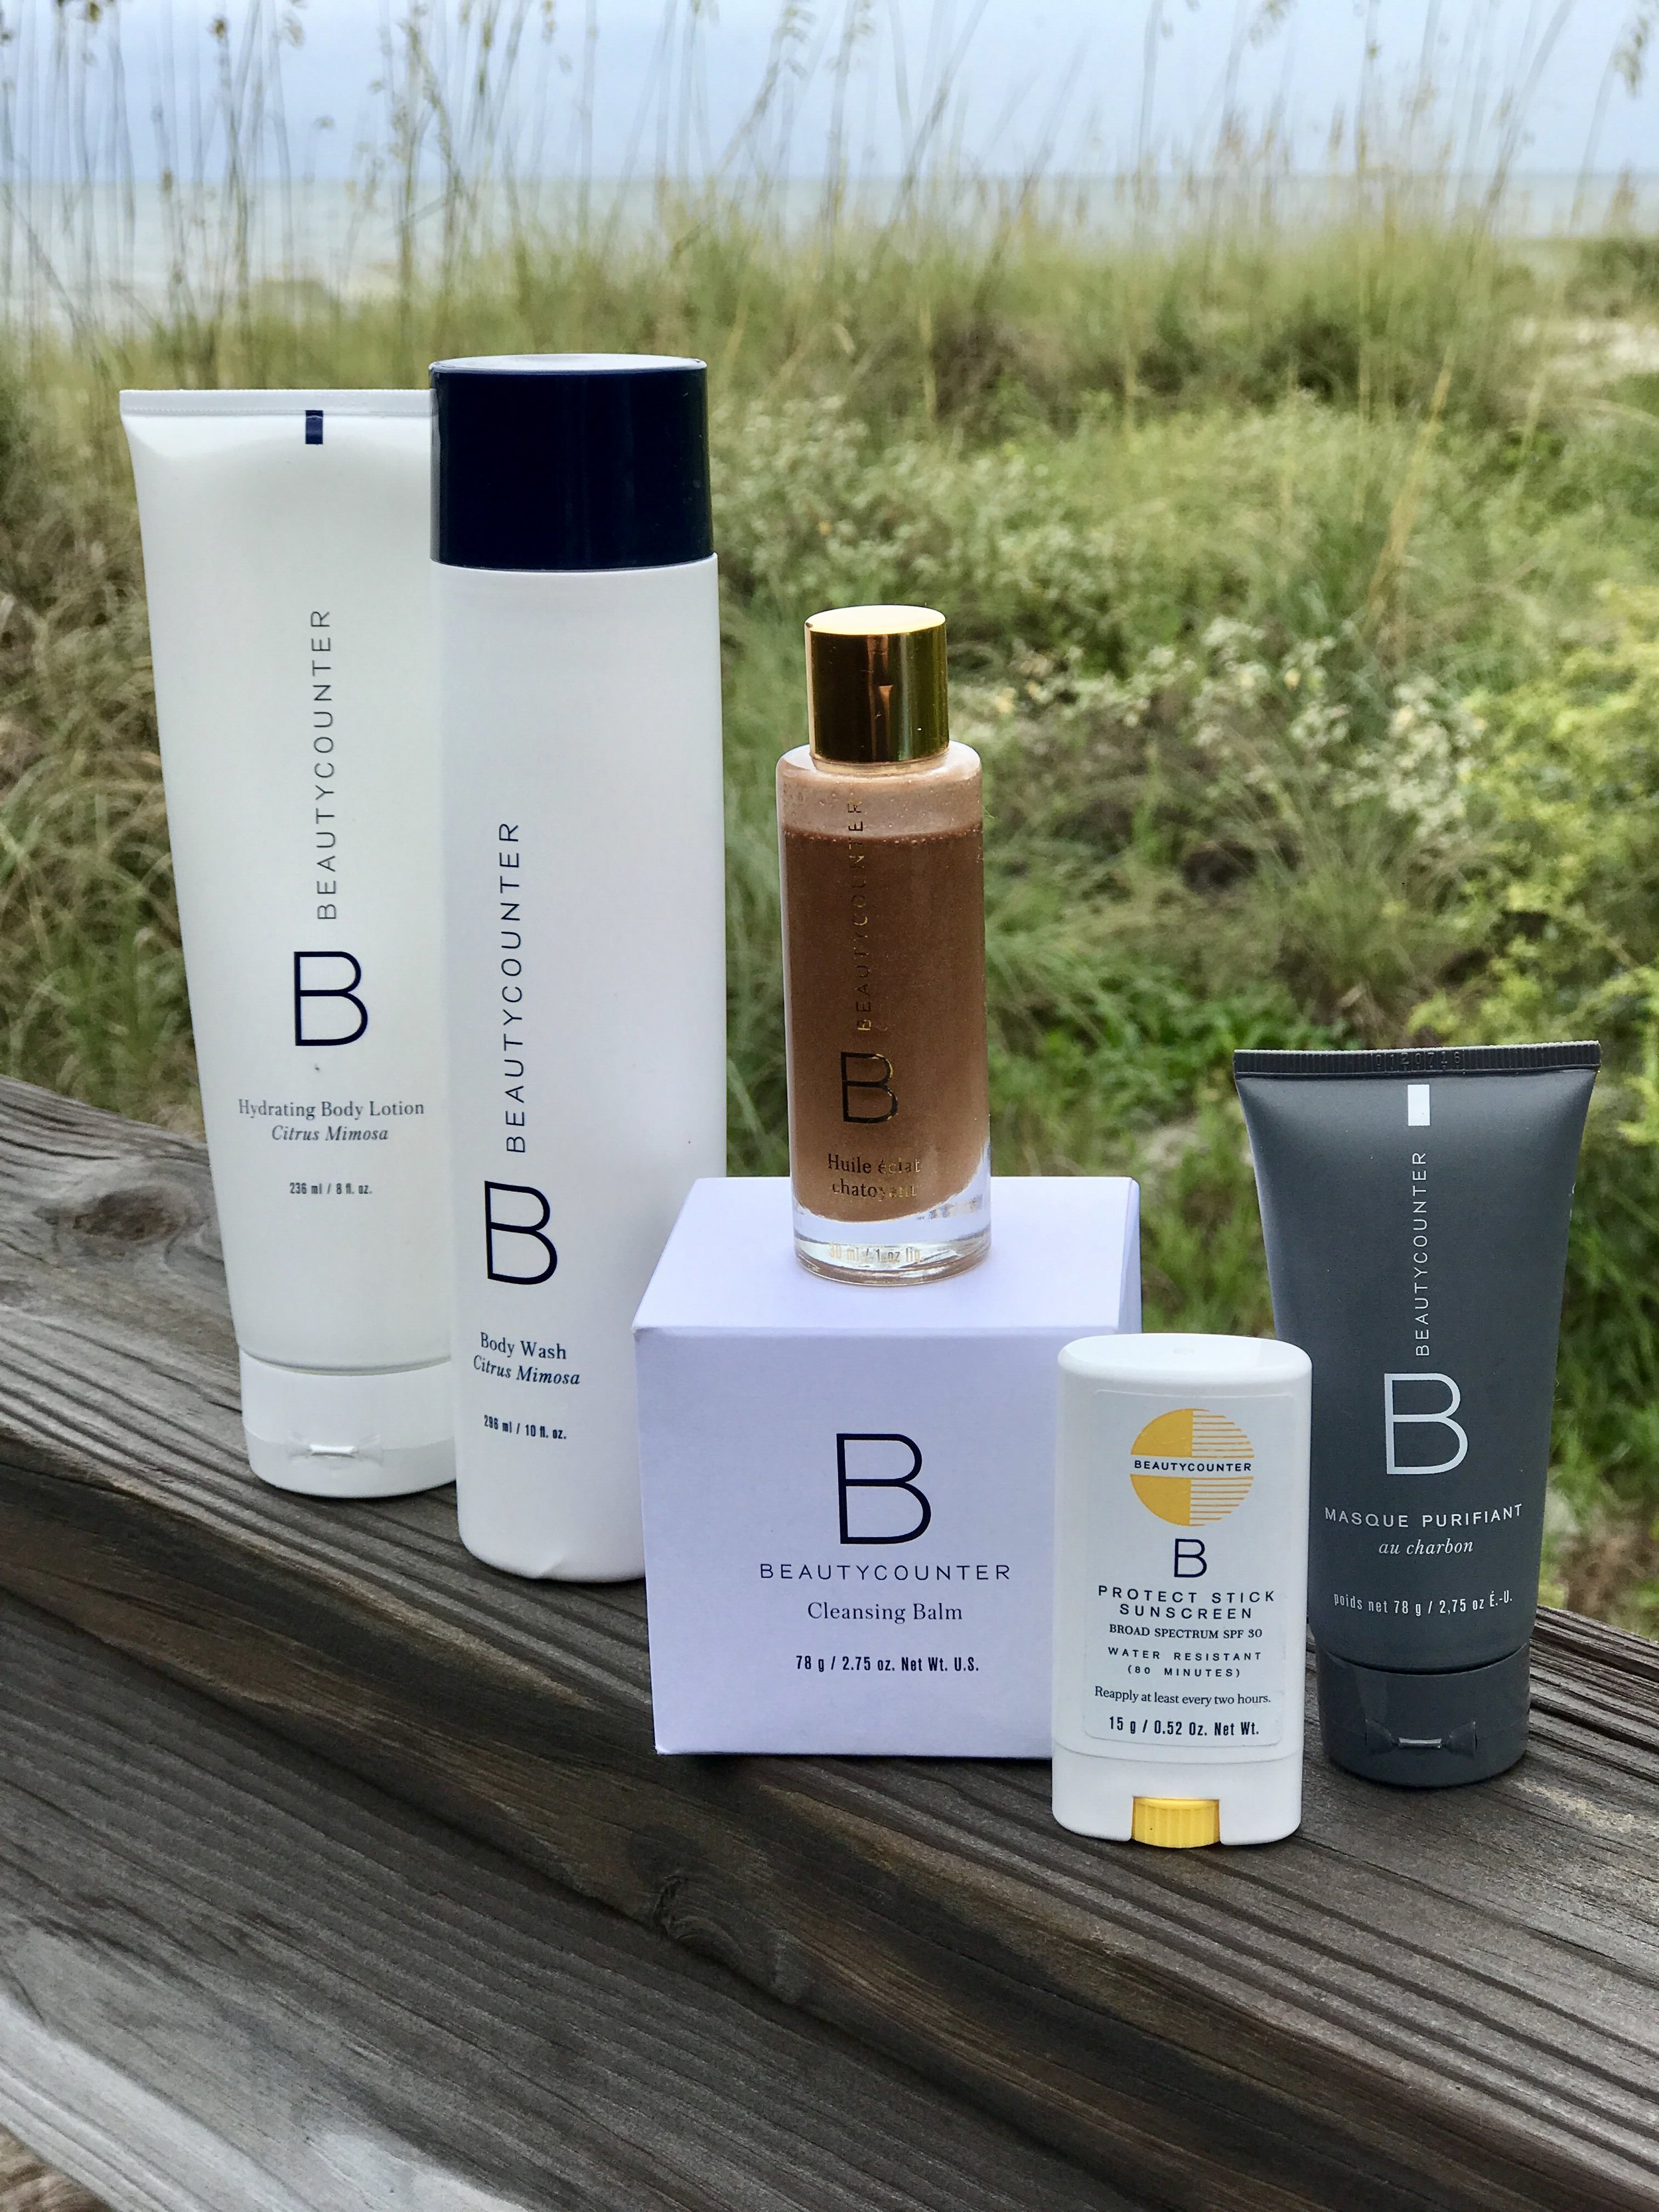 hydrating body lotion   |   body wash   |   glow shimmer oil   |   cleansing balm   |   sunscreen stick   |   charcoal mask